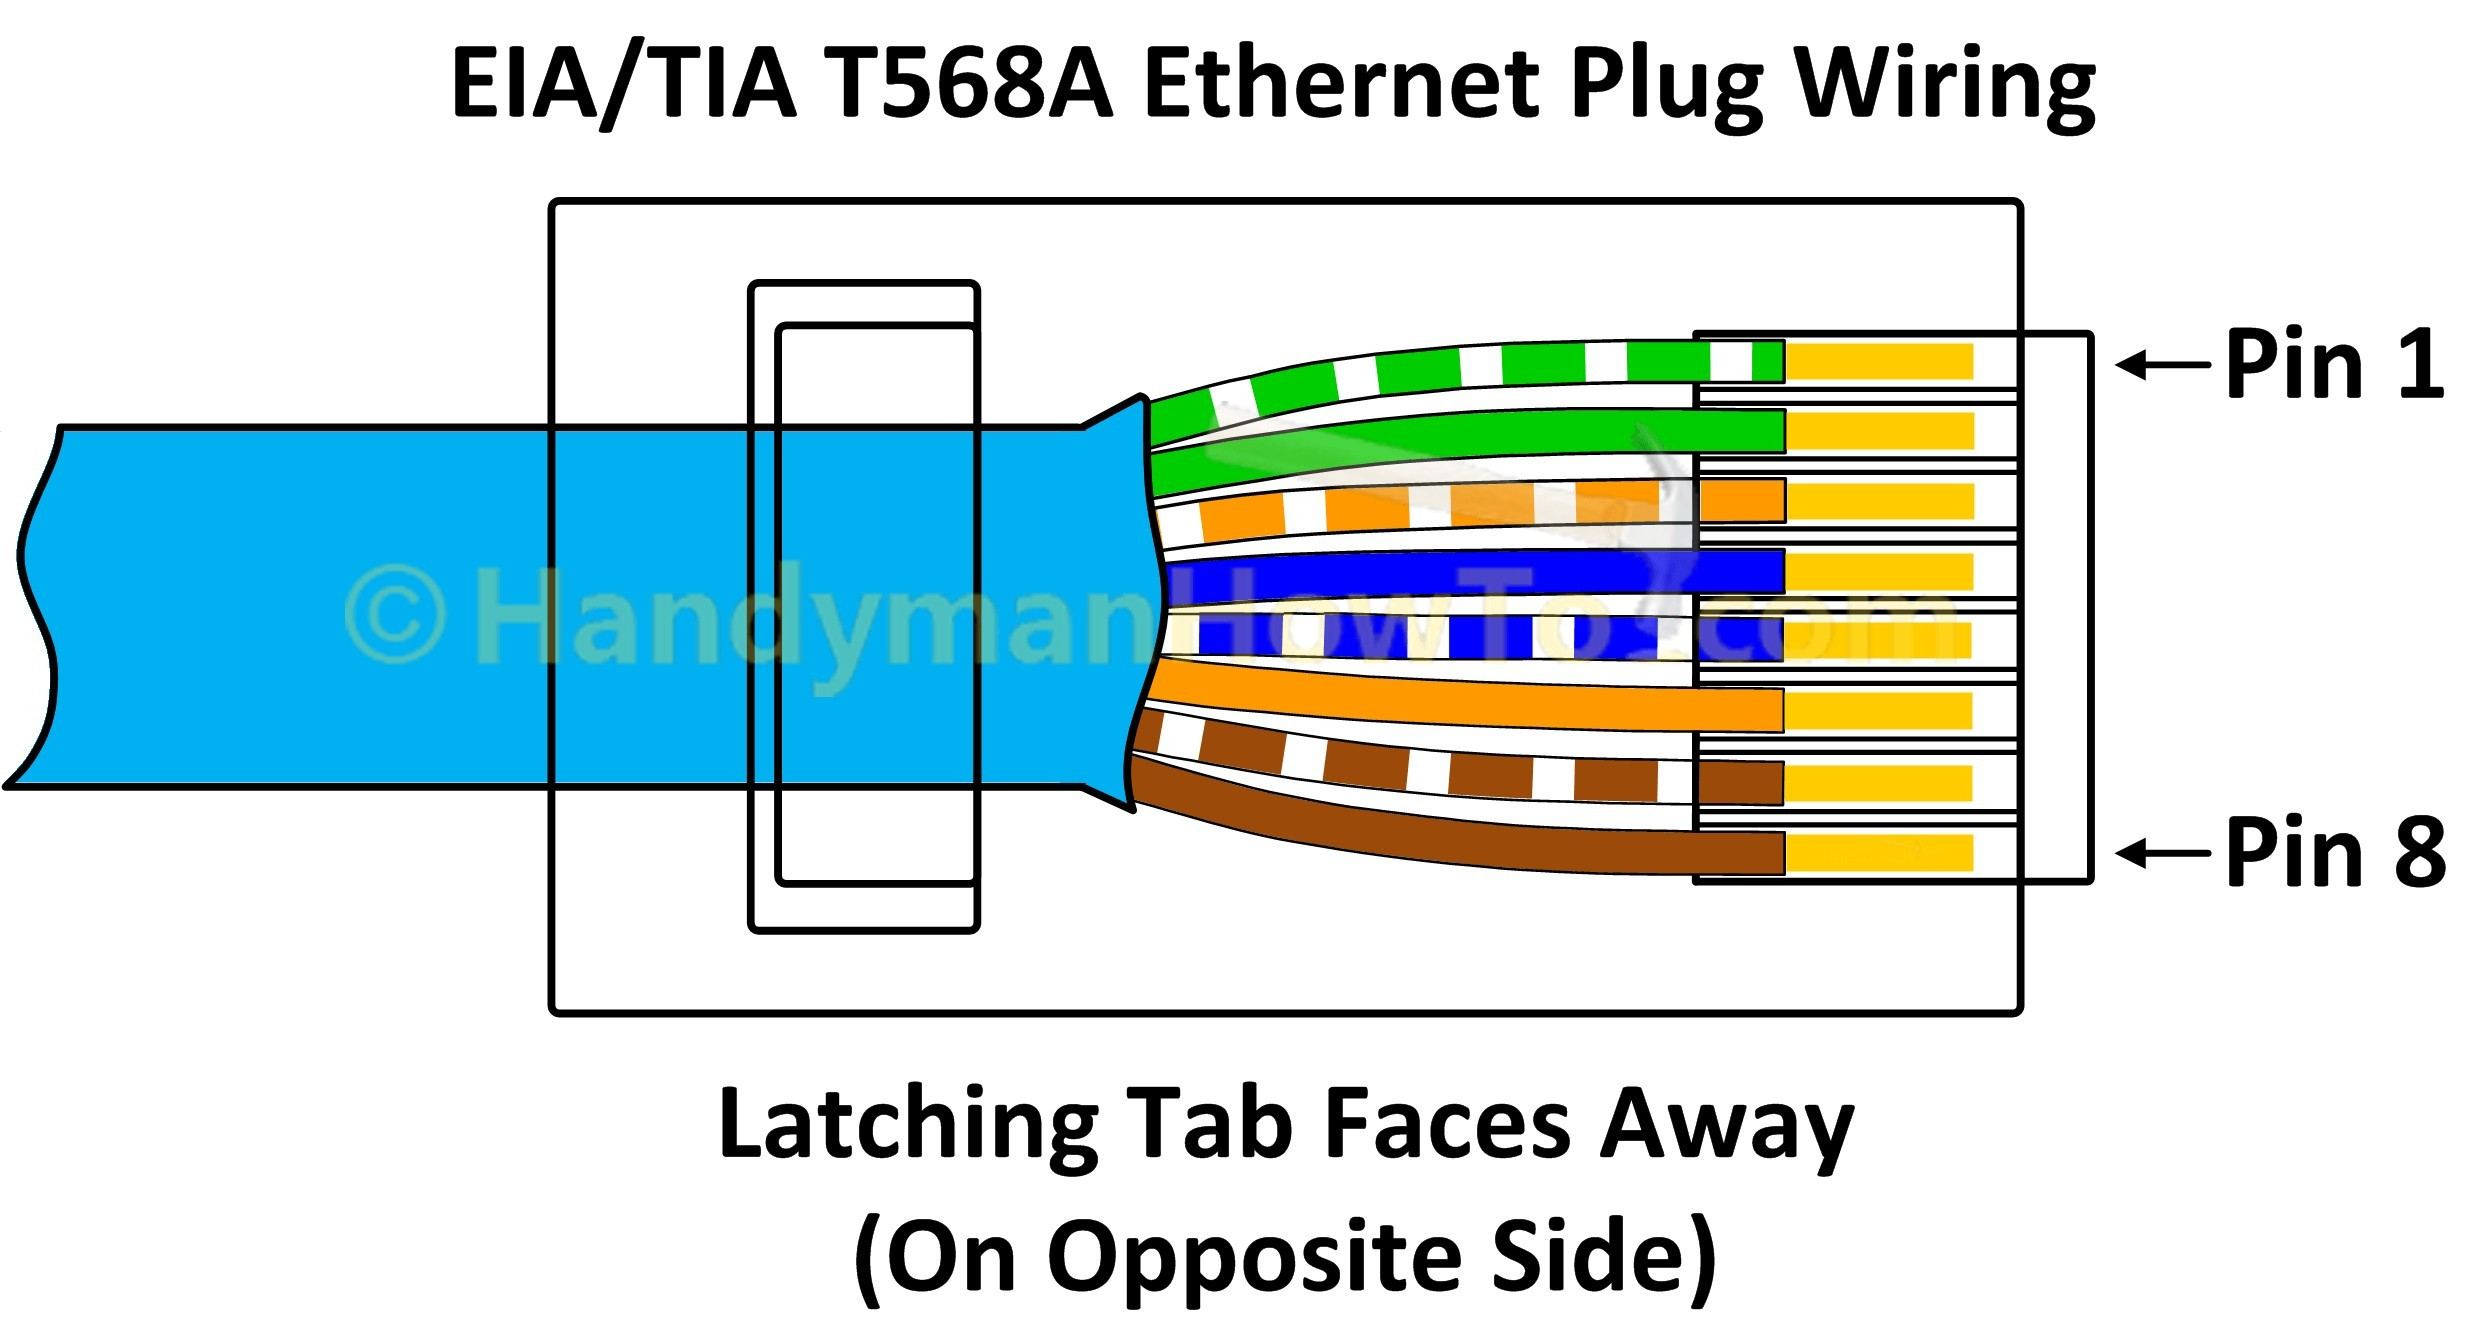 Ethernet Patch Cable Wiring Diagram Gigabit Cable Wiring Diagram Another Blog About Wiring Diagram • Of Ethernet Patch Cable Wiring Diagram Cat 5 Cable Diagram Cat5e Wire Diagram New Ethernet Cable Wiring